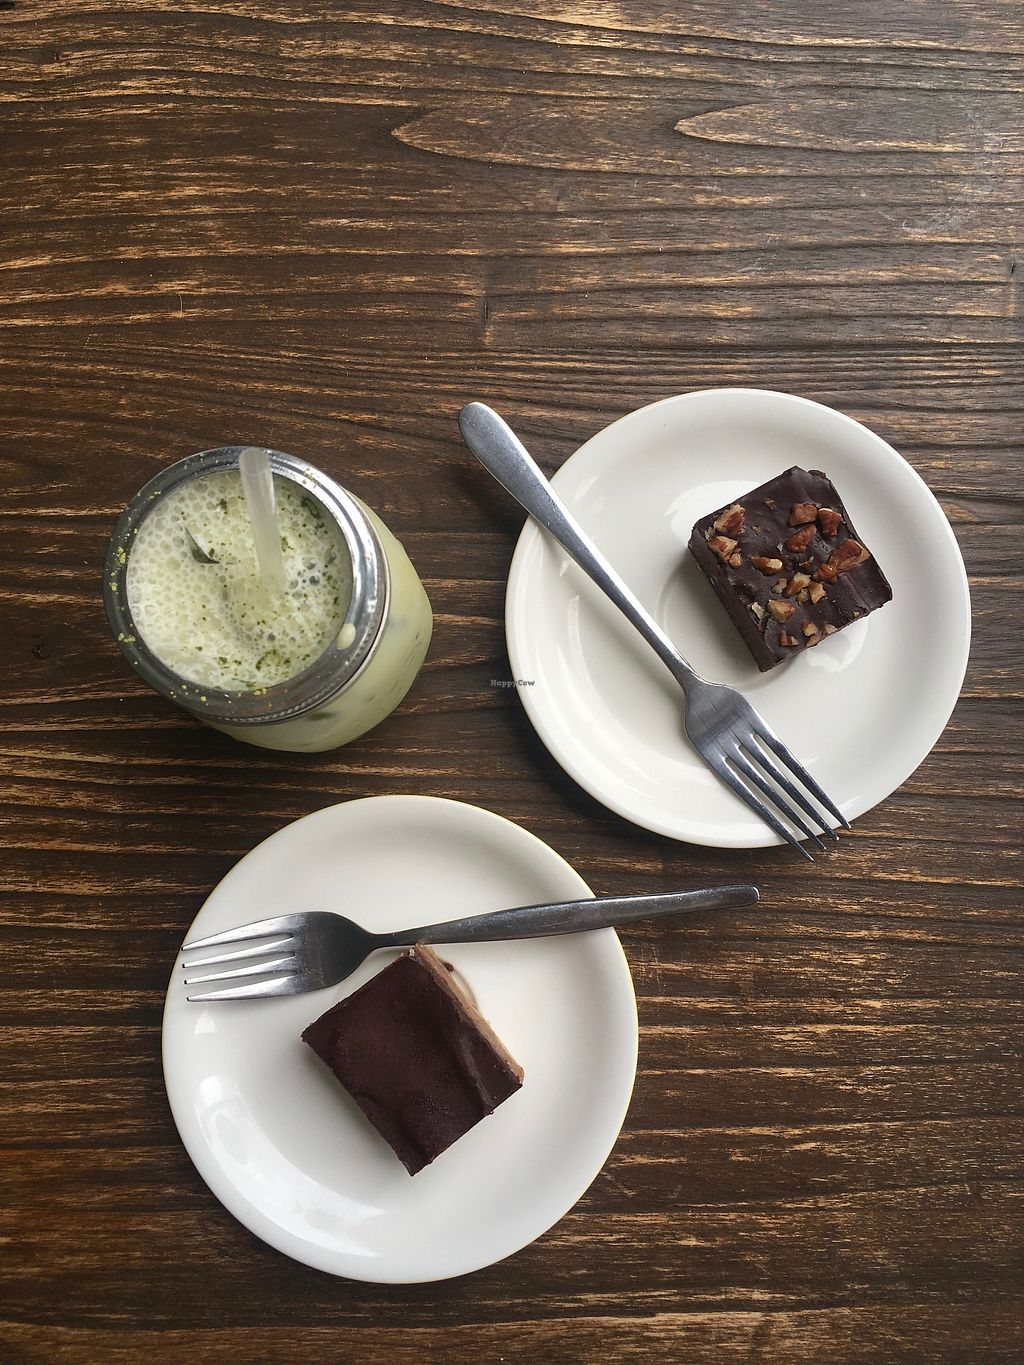 """Photo of CLOSED: Pineapple Cafe  by <a href=""""/members/profile/jojoinbrighton"""">jojoinbrighton</a> <br/>Raw desserts and an almond milk matcha latte <br/> August 5, 2017  - <a href='/contact/abuse/image/81919/288939'>Report</a>"""